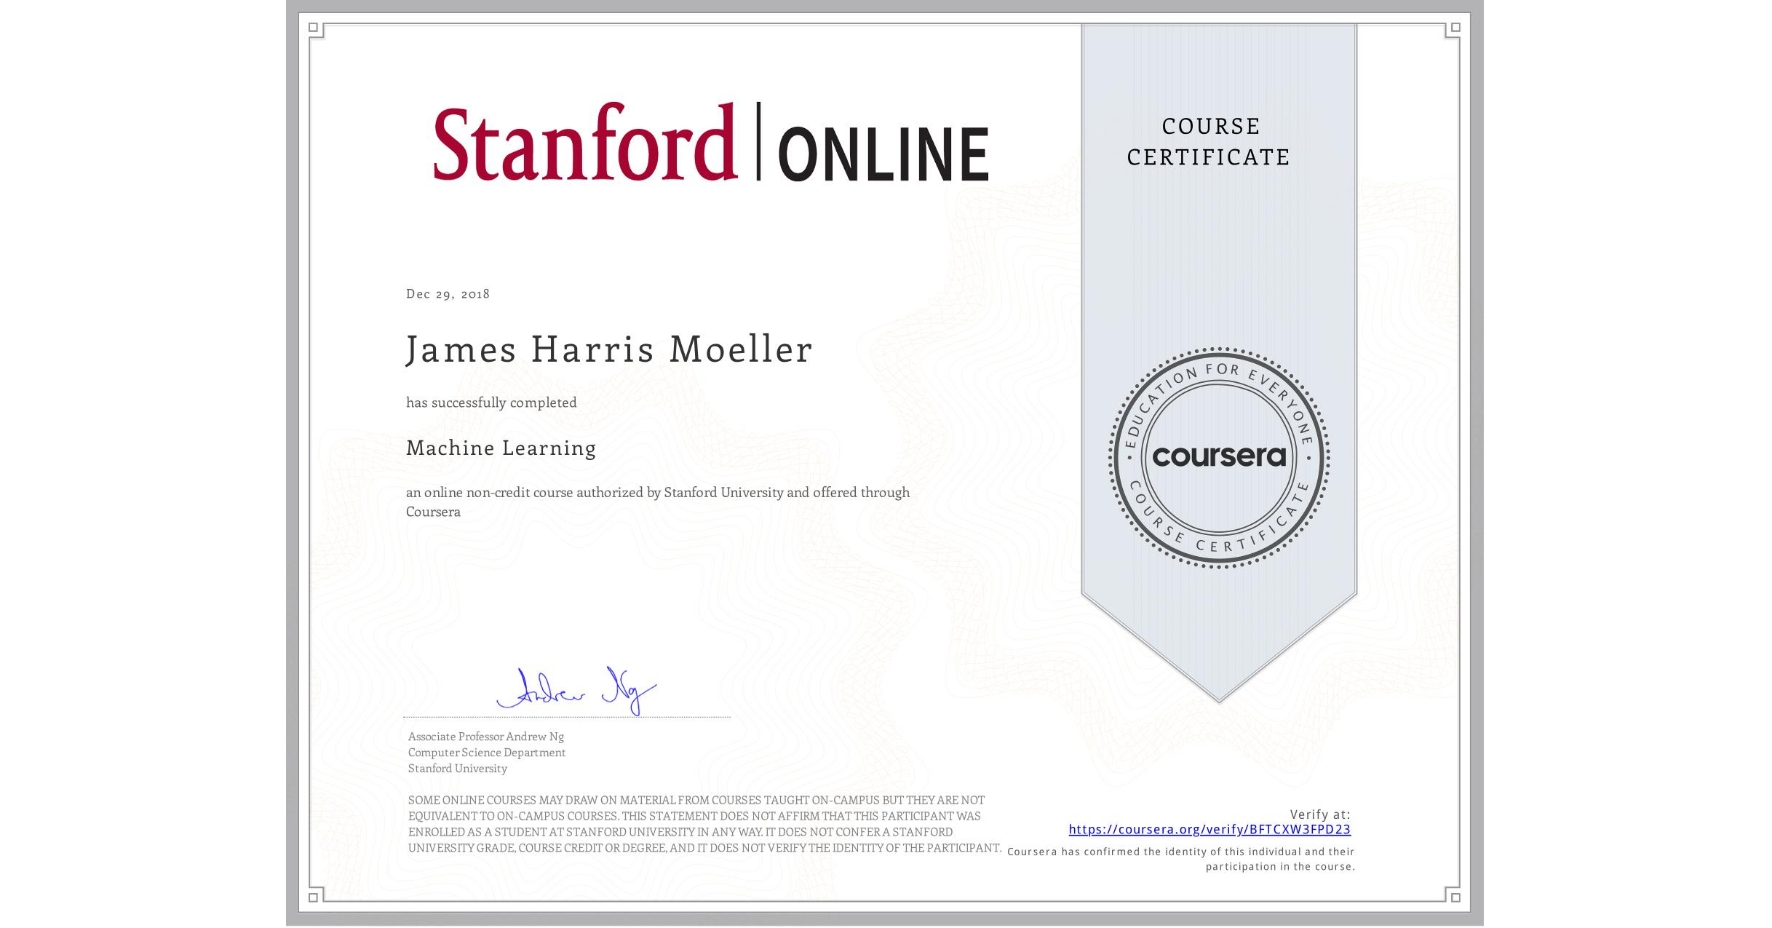 View certificate for James Harris Moeller, Machine Learning, an online non-credit course authorized by Stanford University and offered through Coursera